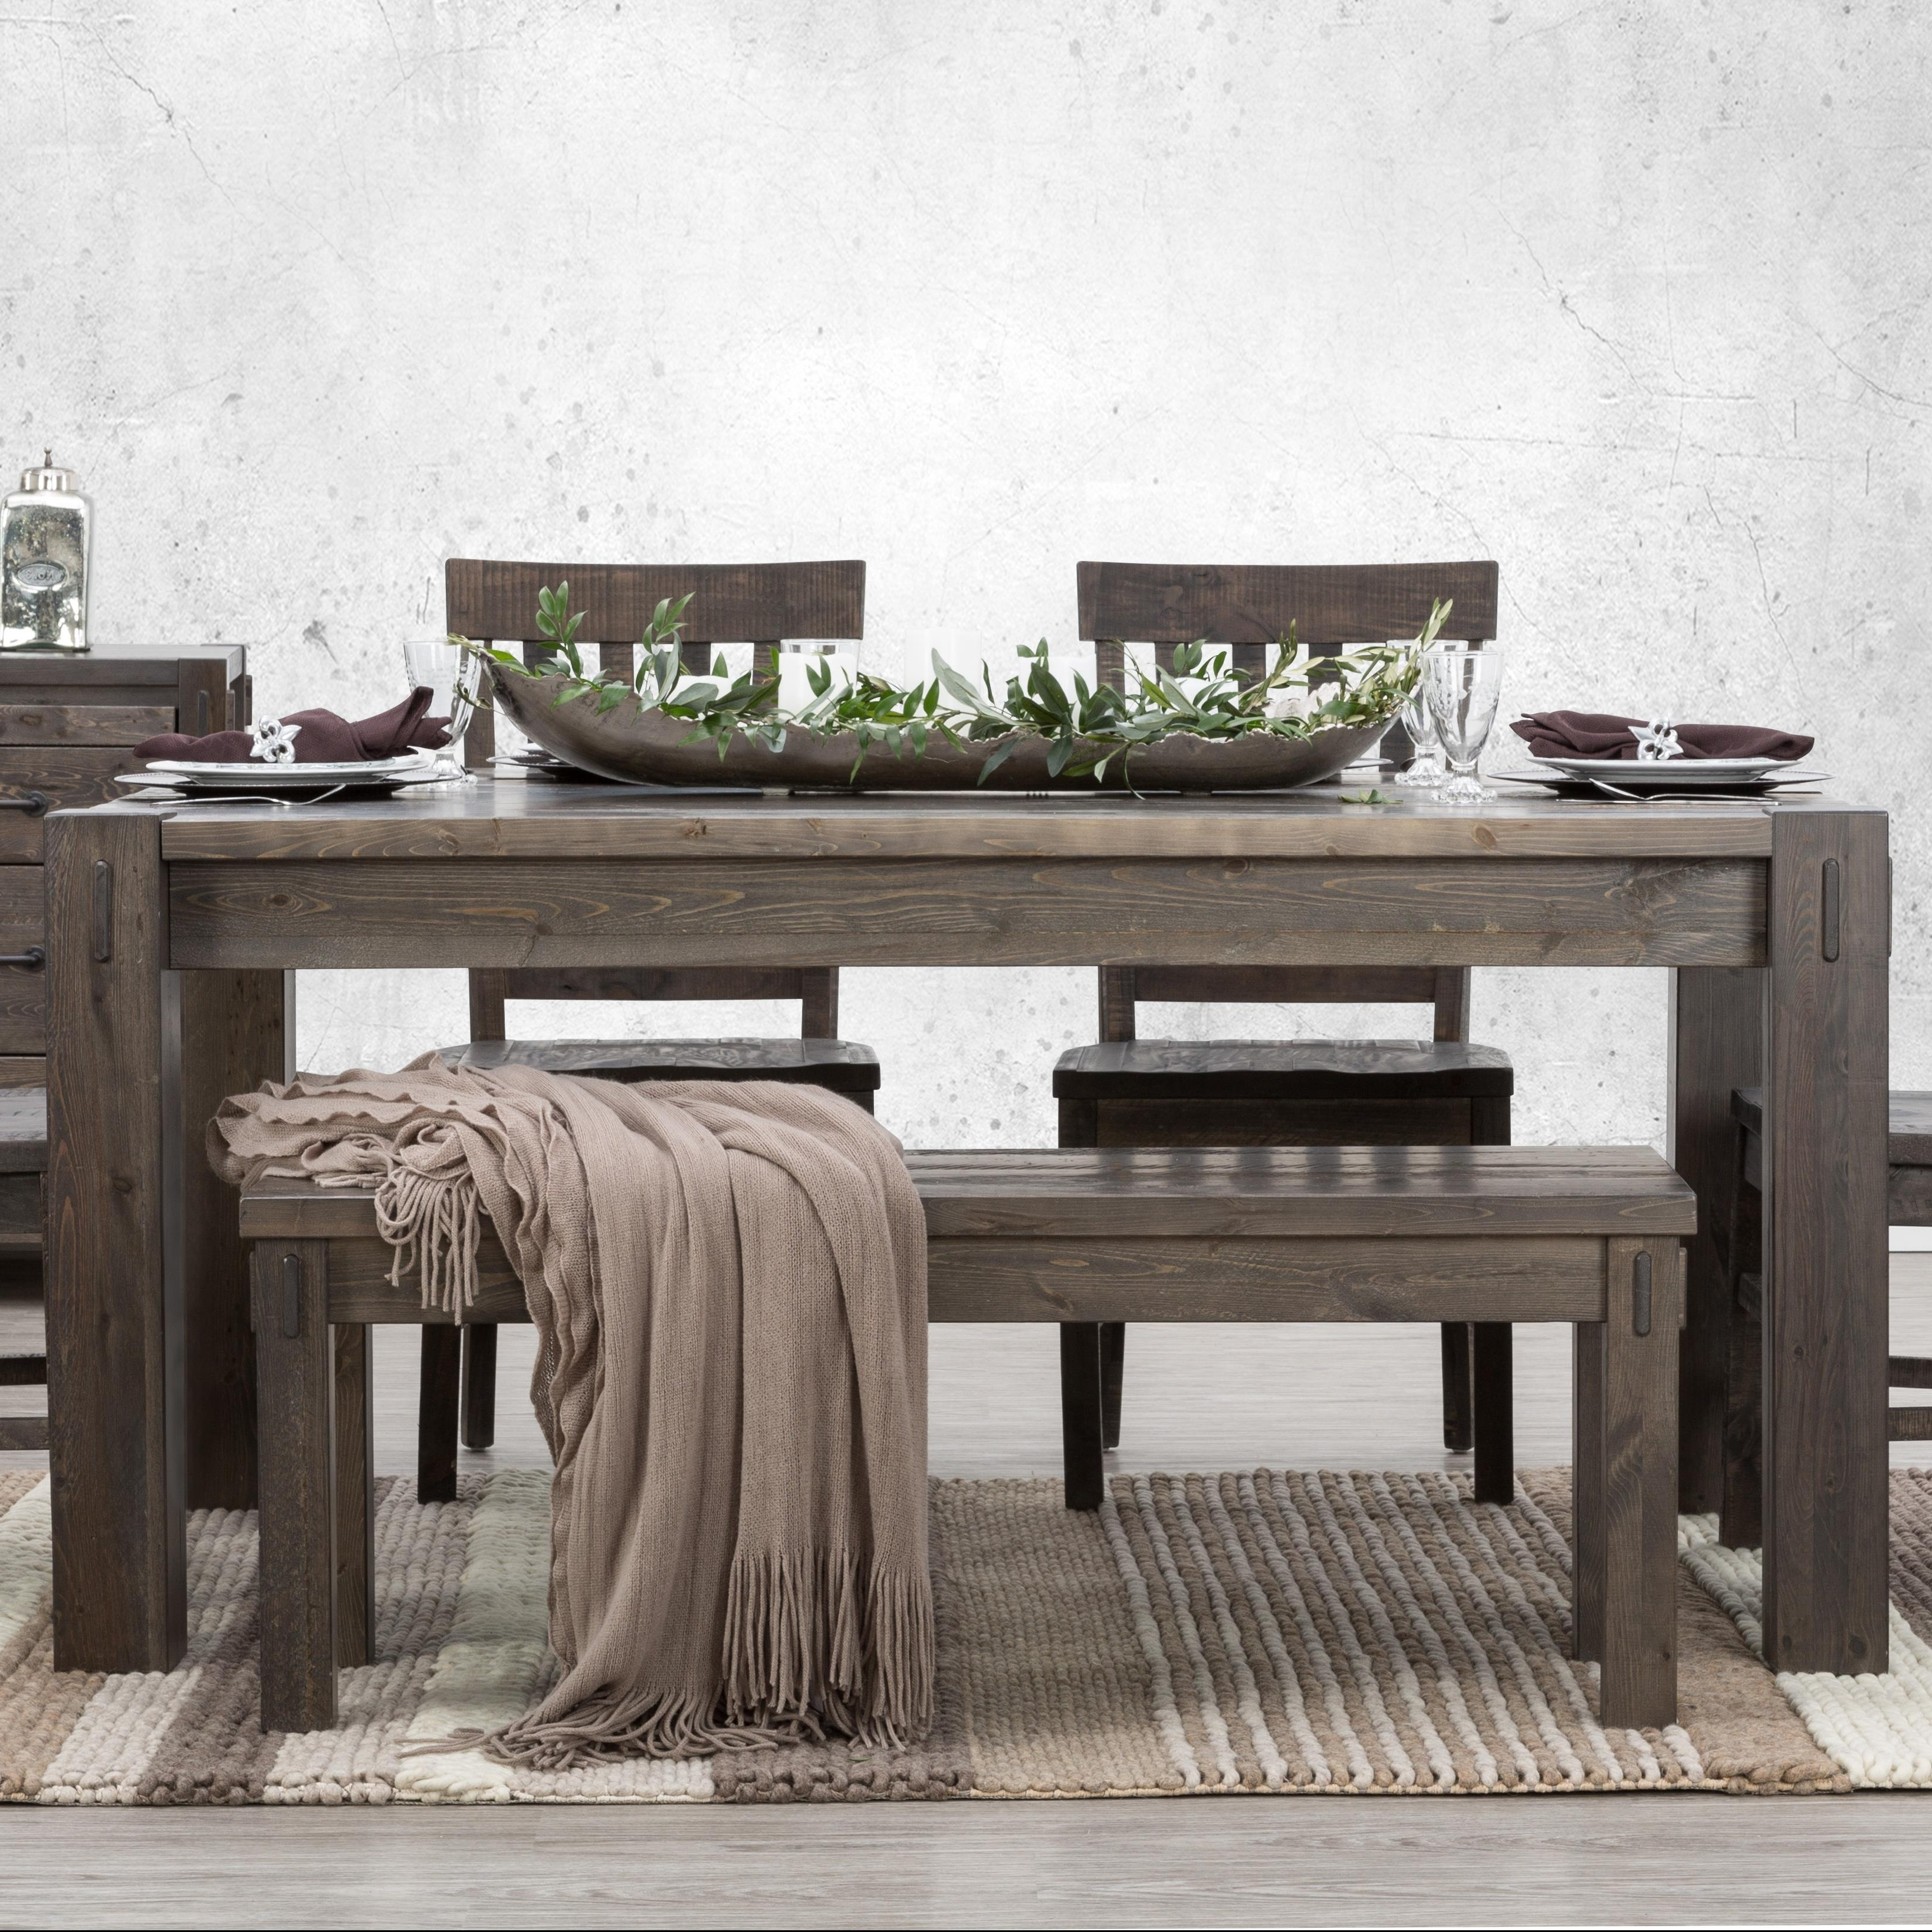 Defehr Stockton Rectangular Dining Table With Block Legs (View 6 of 25)